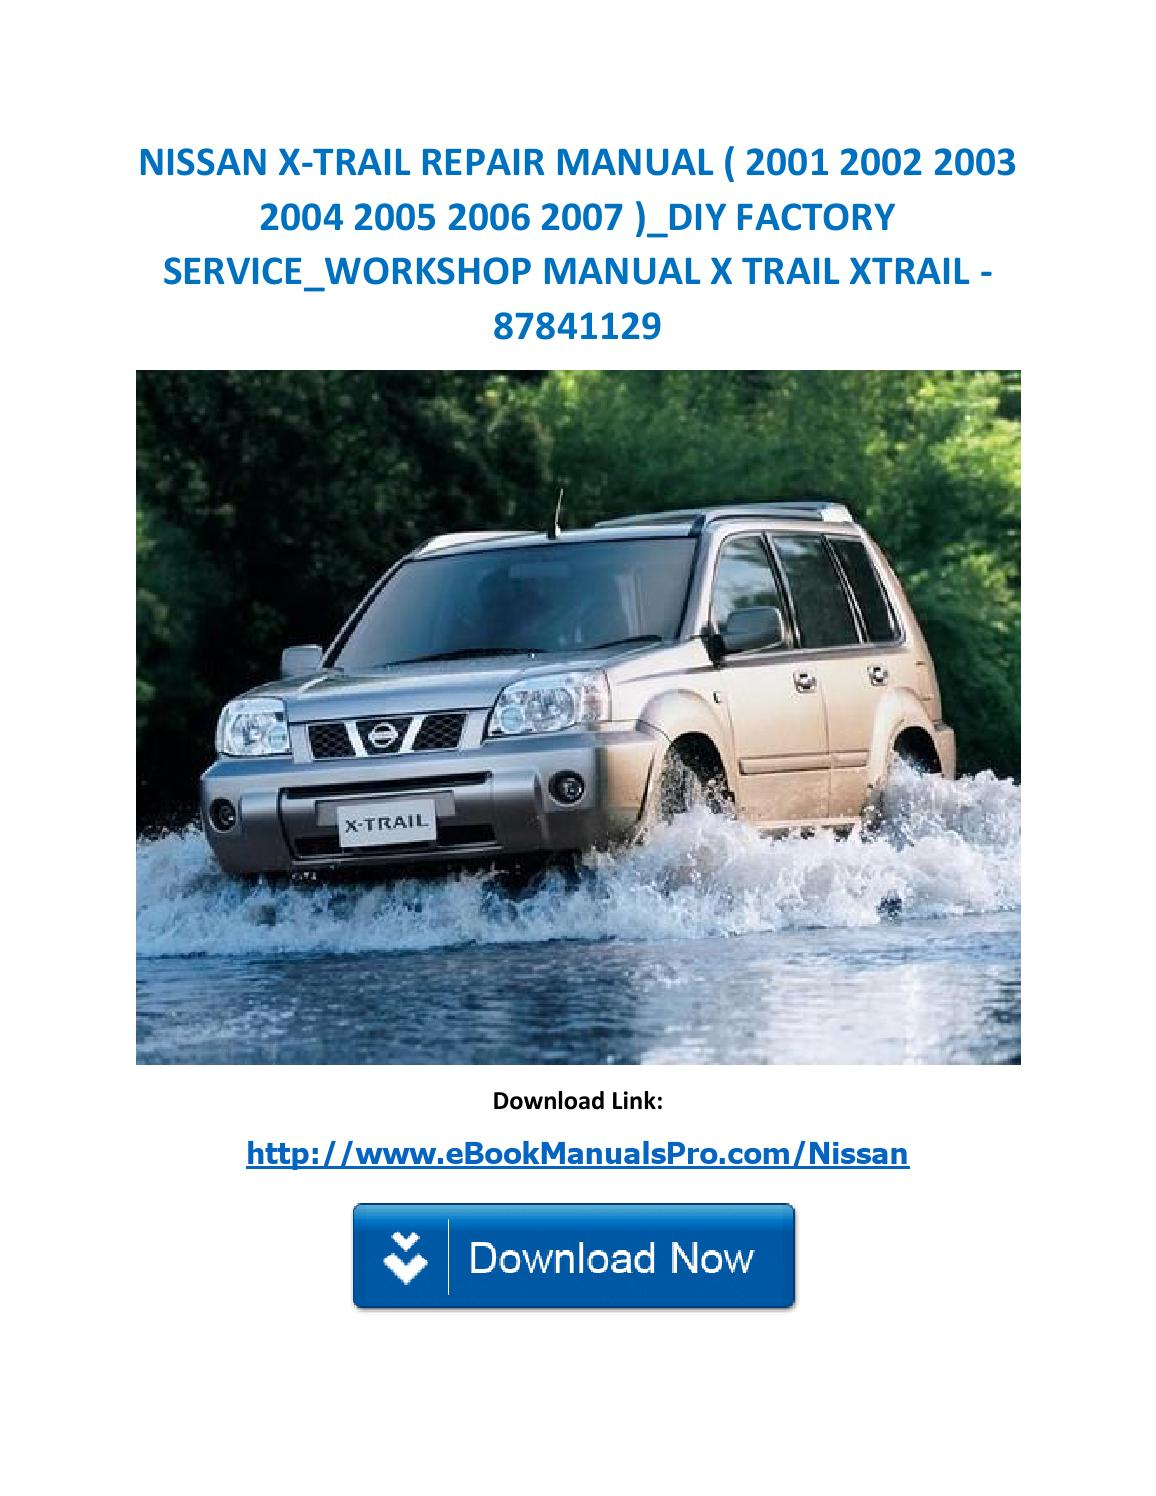 nissan x trail t30 wiring diagram caravan solar workshop manuals 2008 2019 ebook library repair manual 2001 2002 2003 2004 2005 2006 2007 diy factory